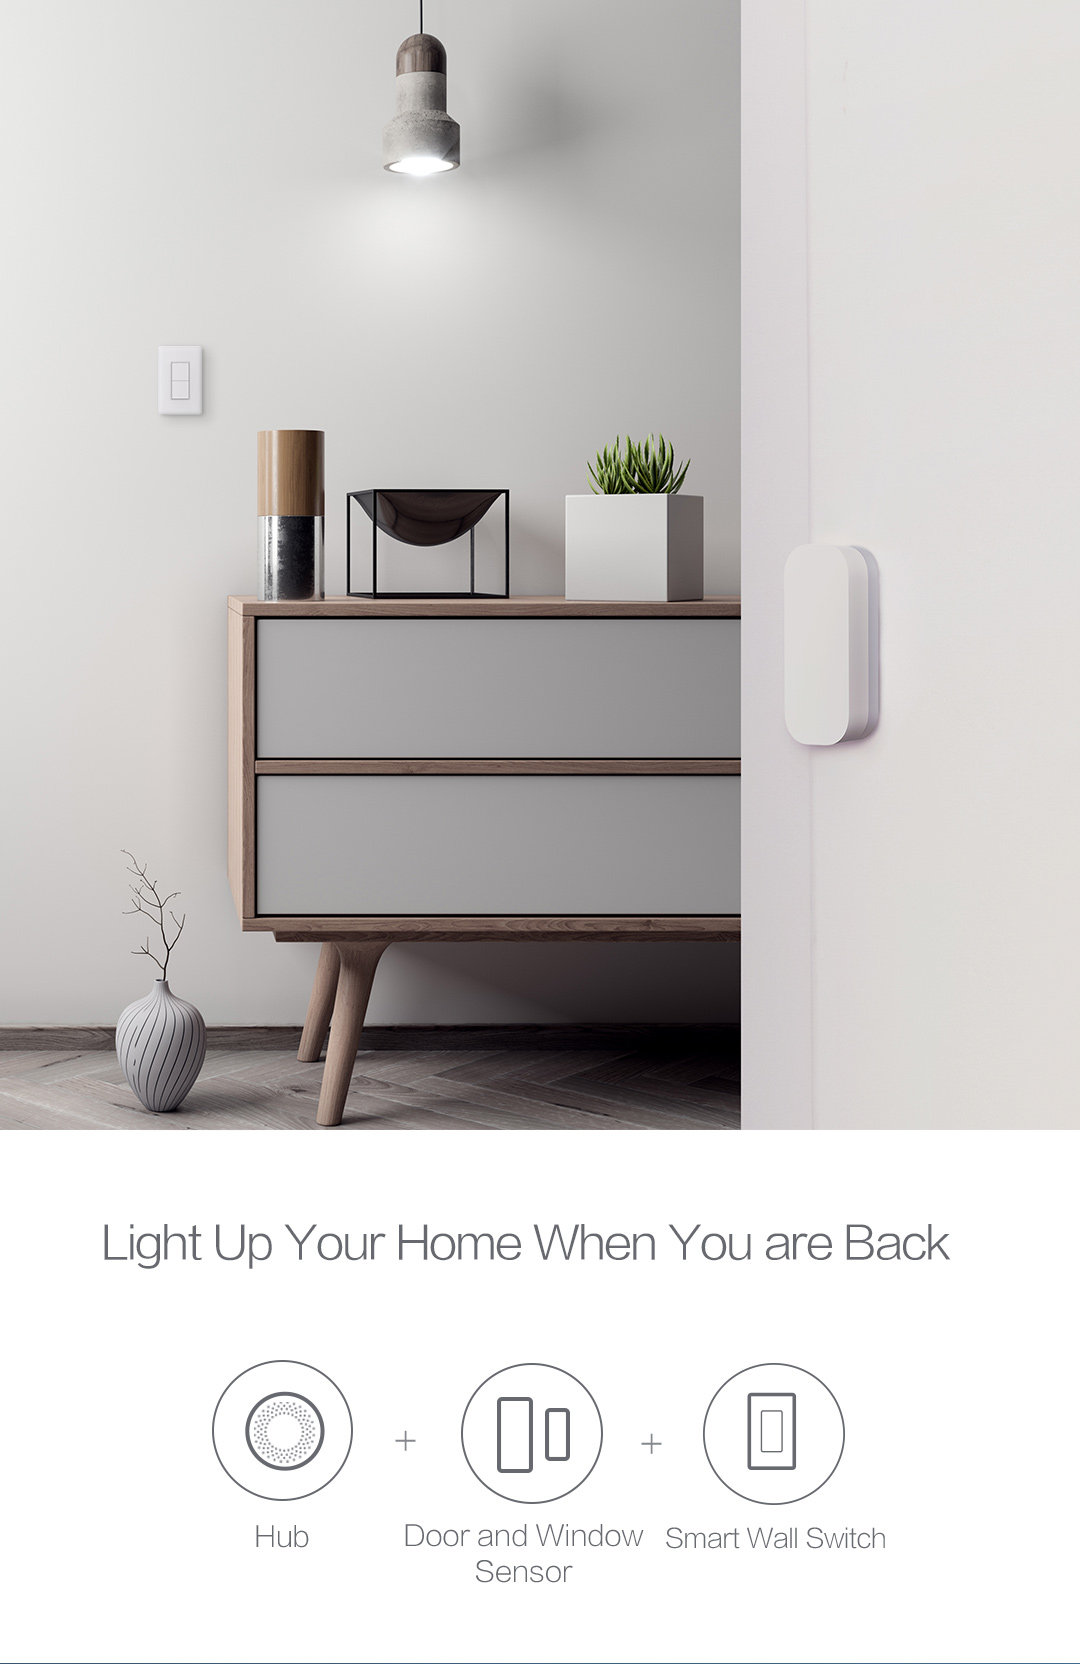 Smart home lighting control with our smart wall switch and door sensor